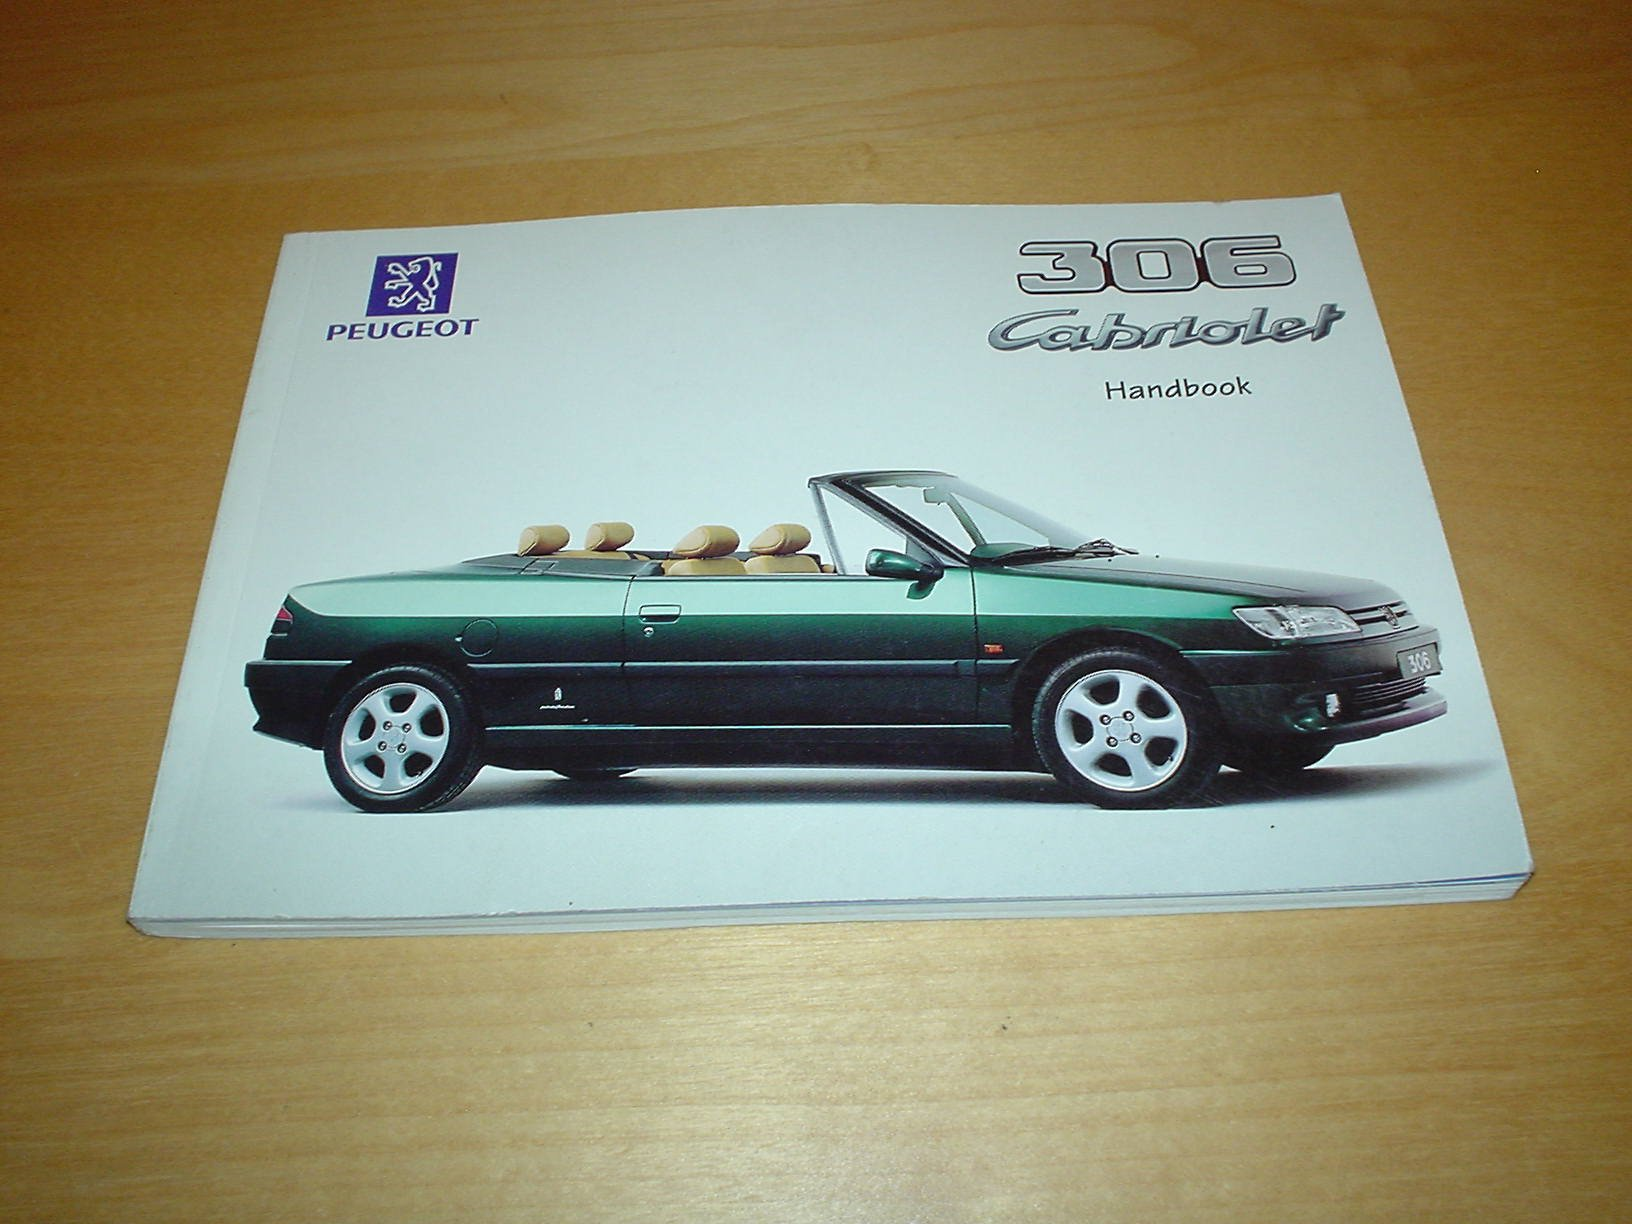 peugeot 306 cabriolet owners manual handbook cabrio convertible rh amazon co uk peugeot 306 user manual pdf Peugeot 406 Coupe